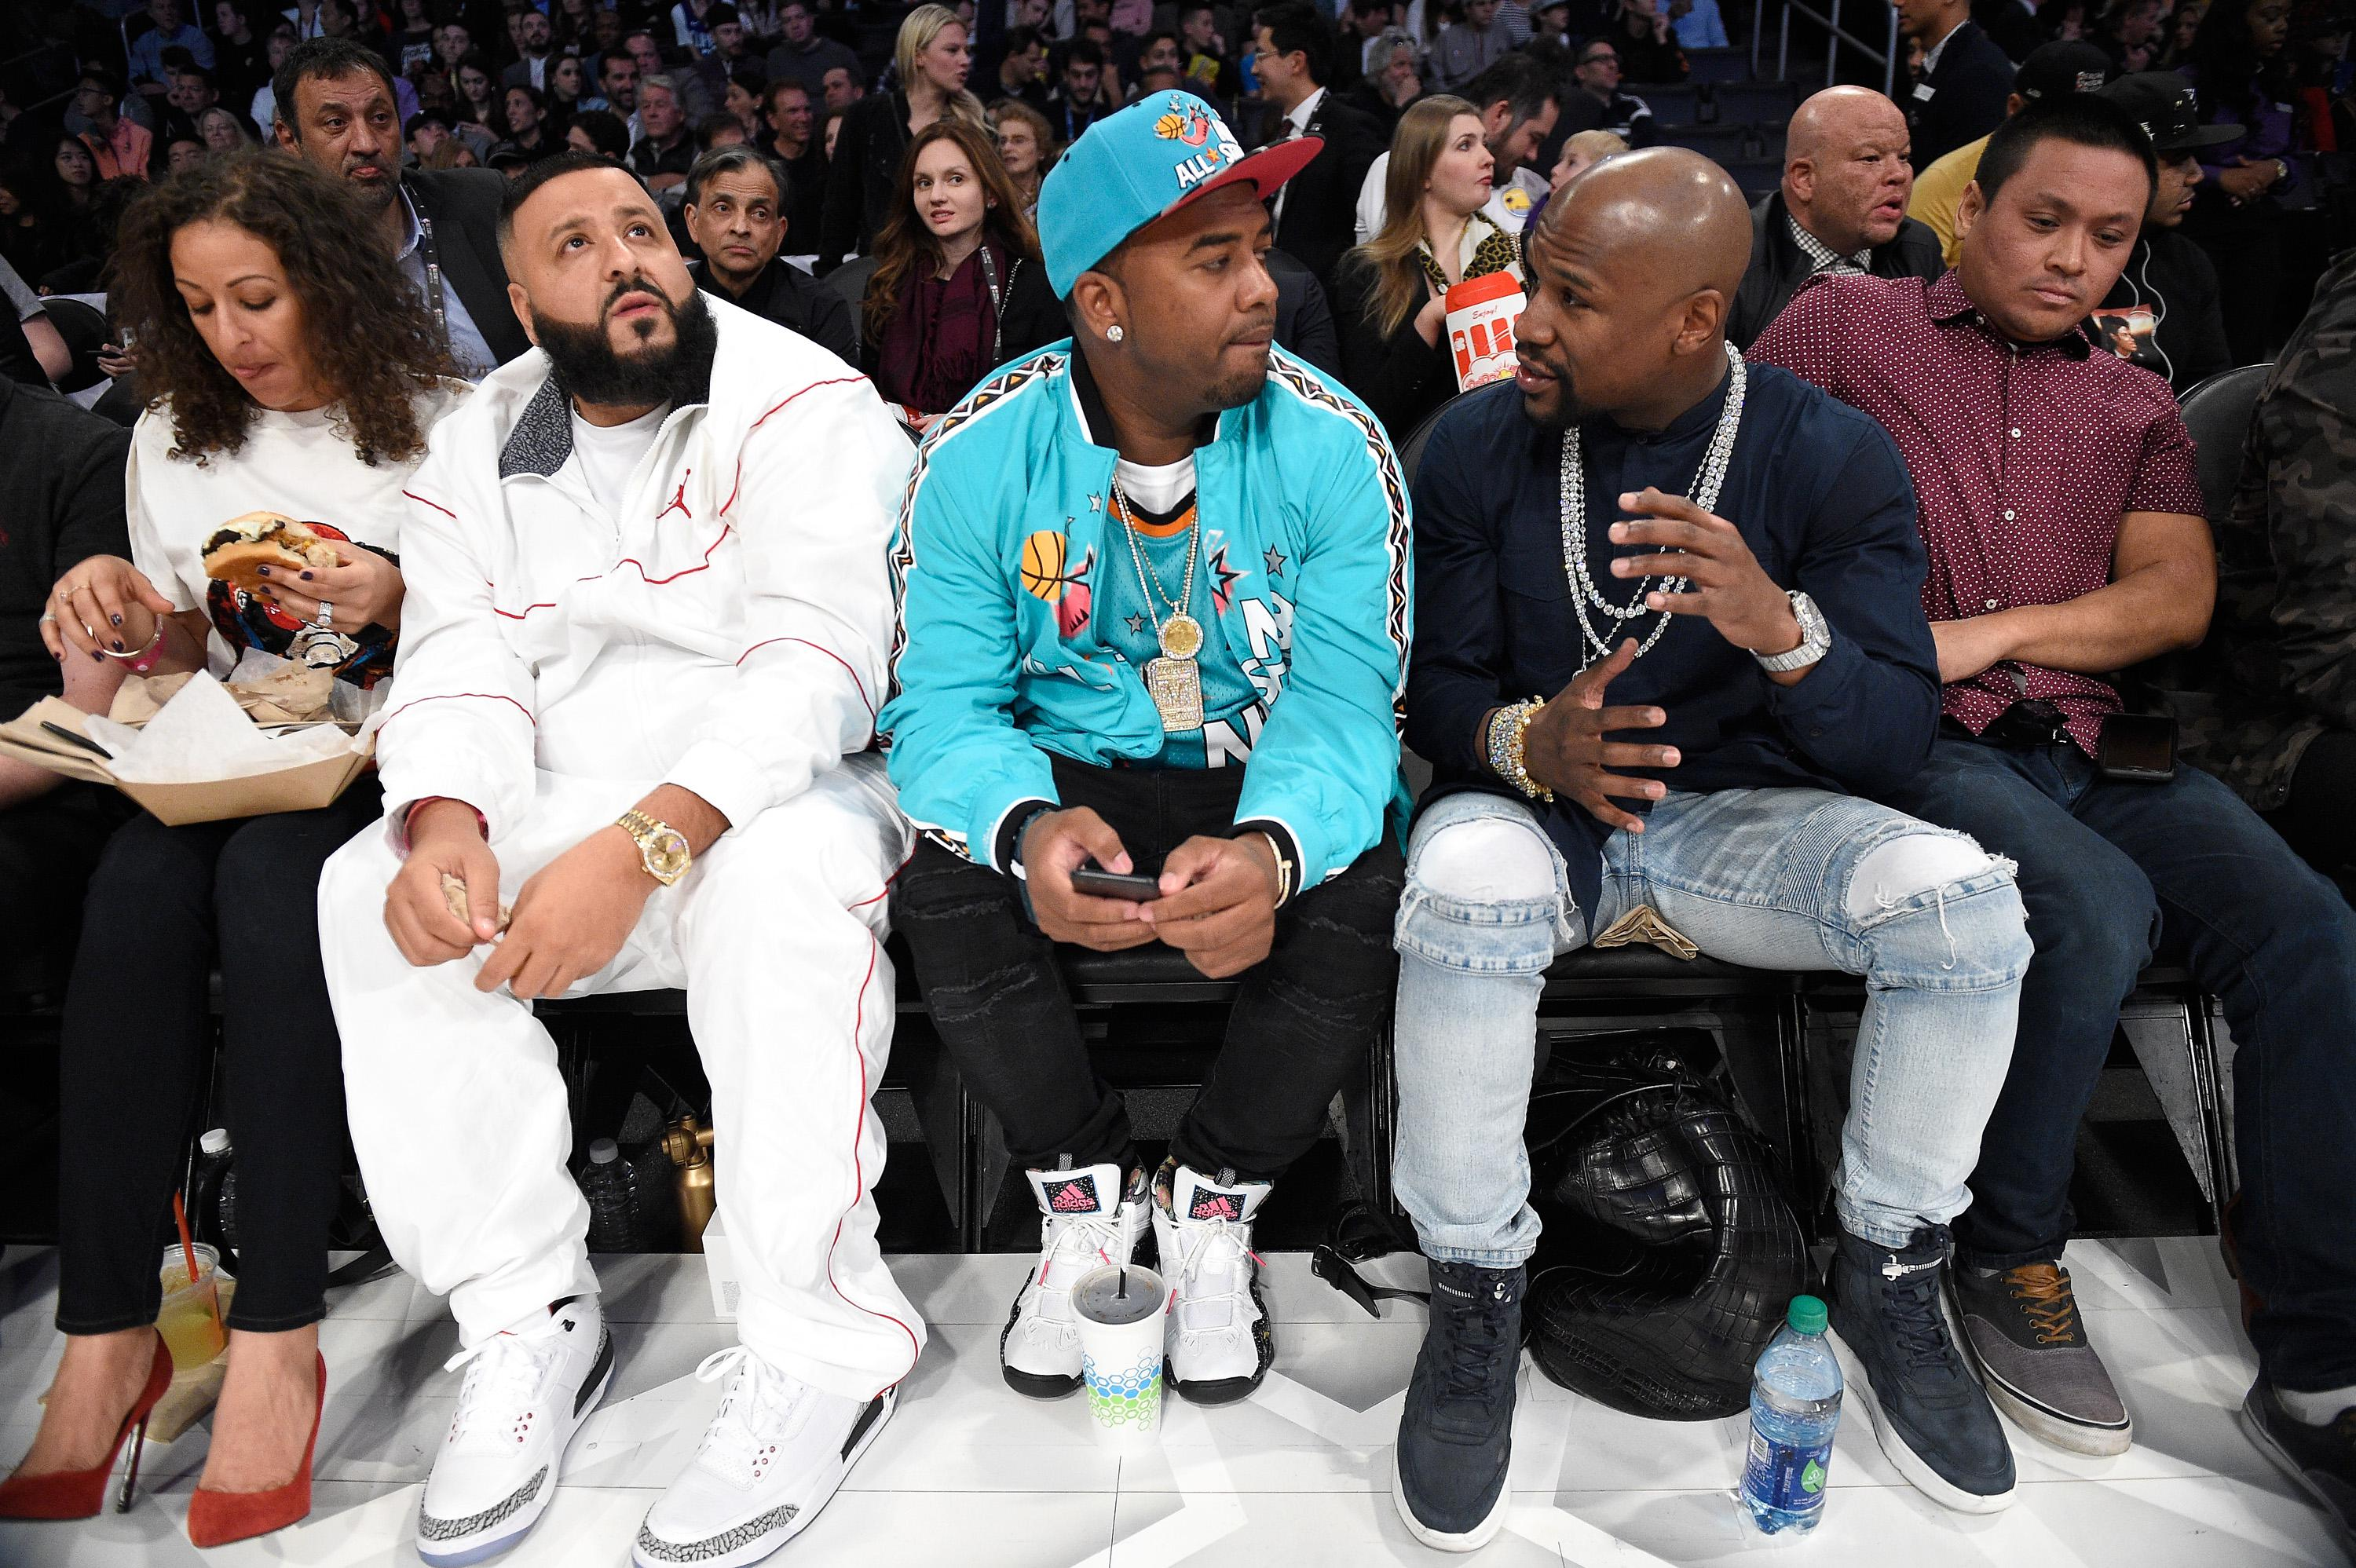 DJ Khaled and Floyd Mayweather at event